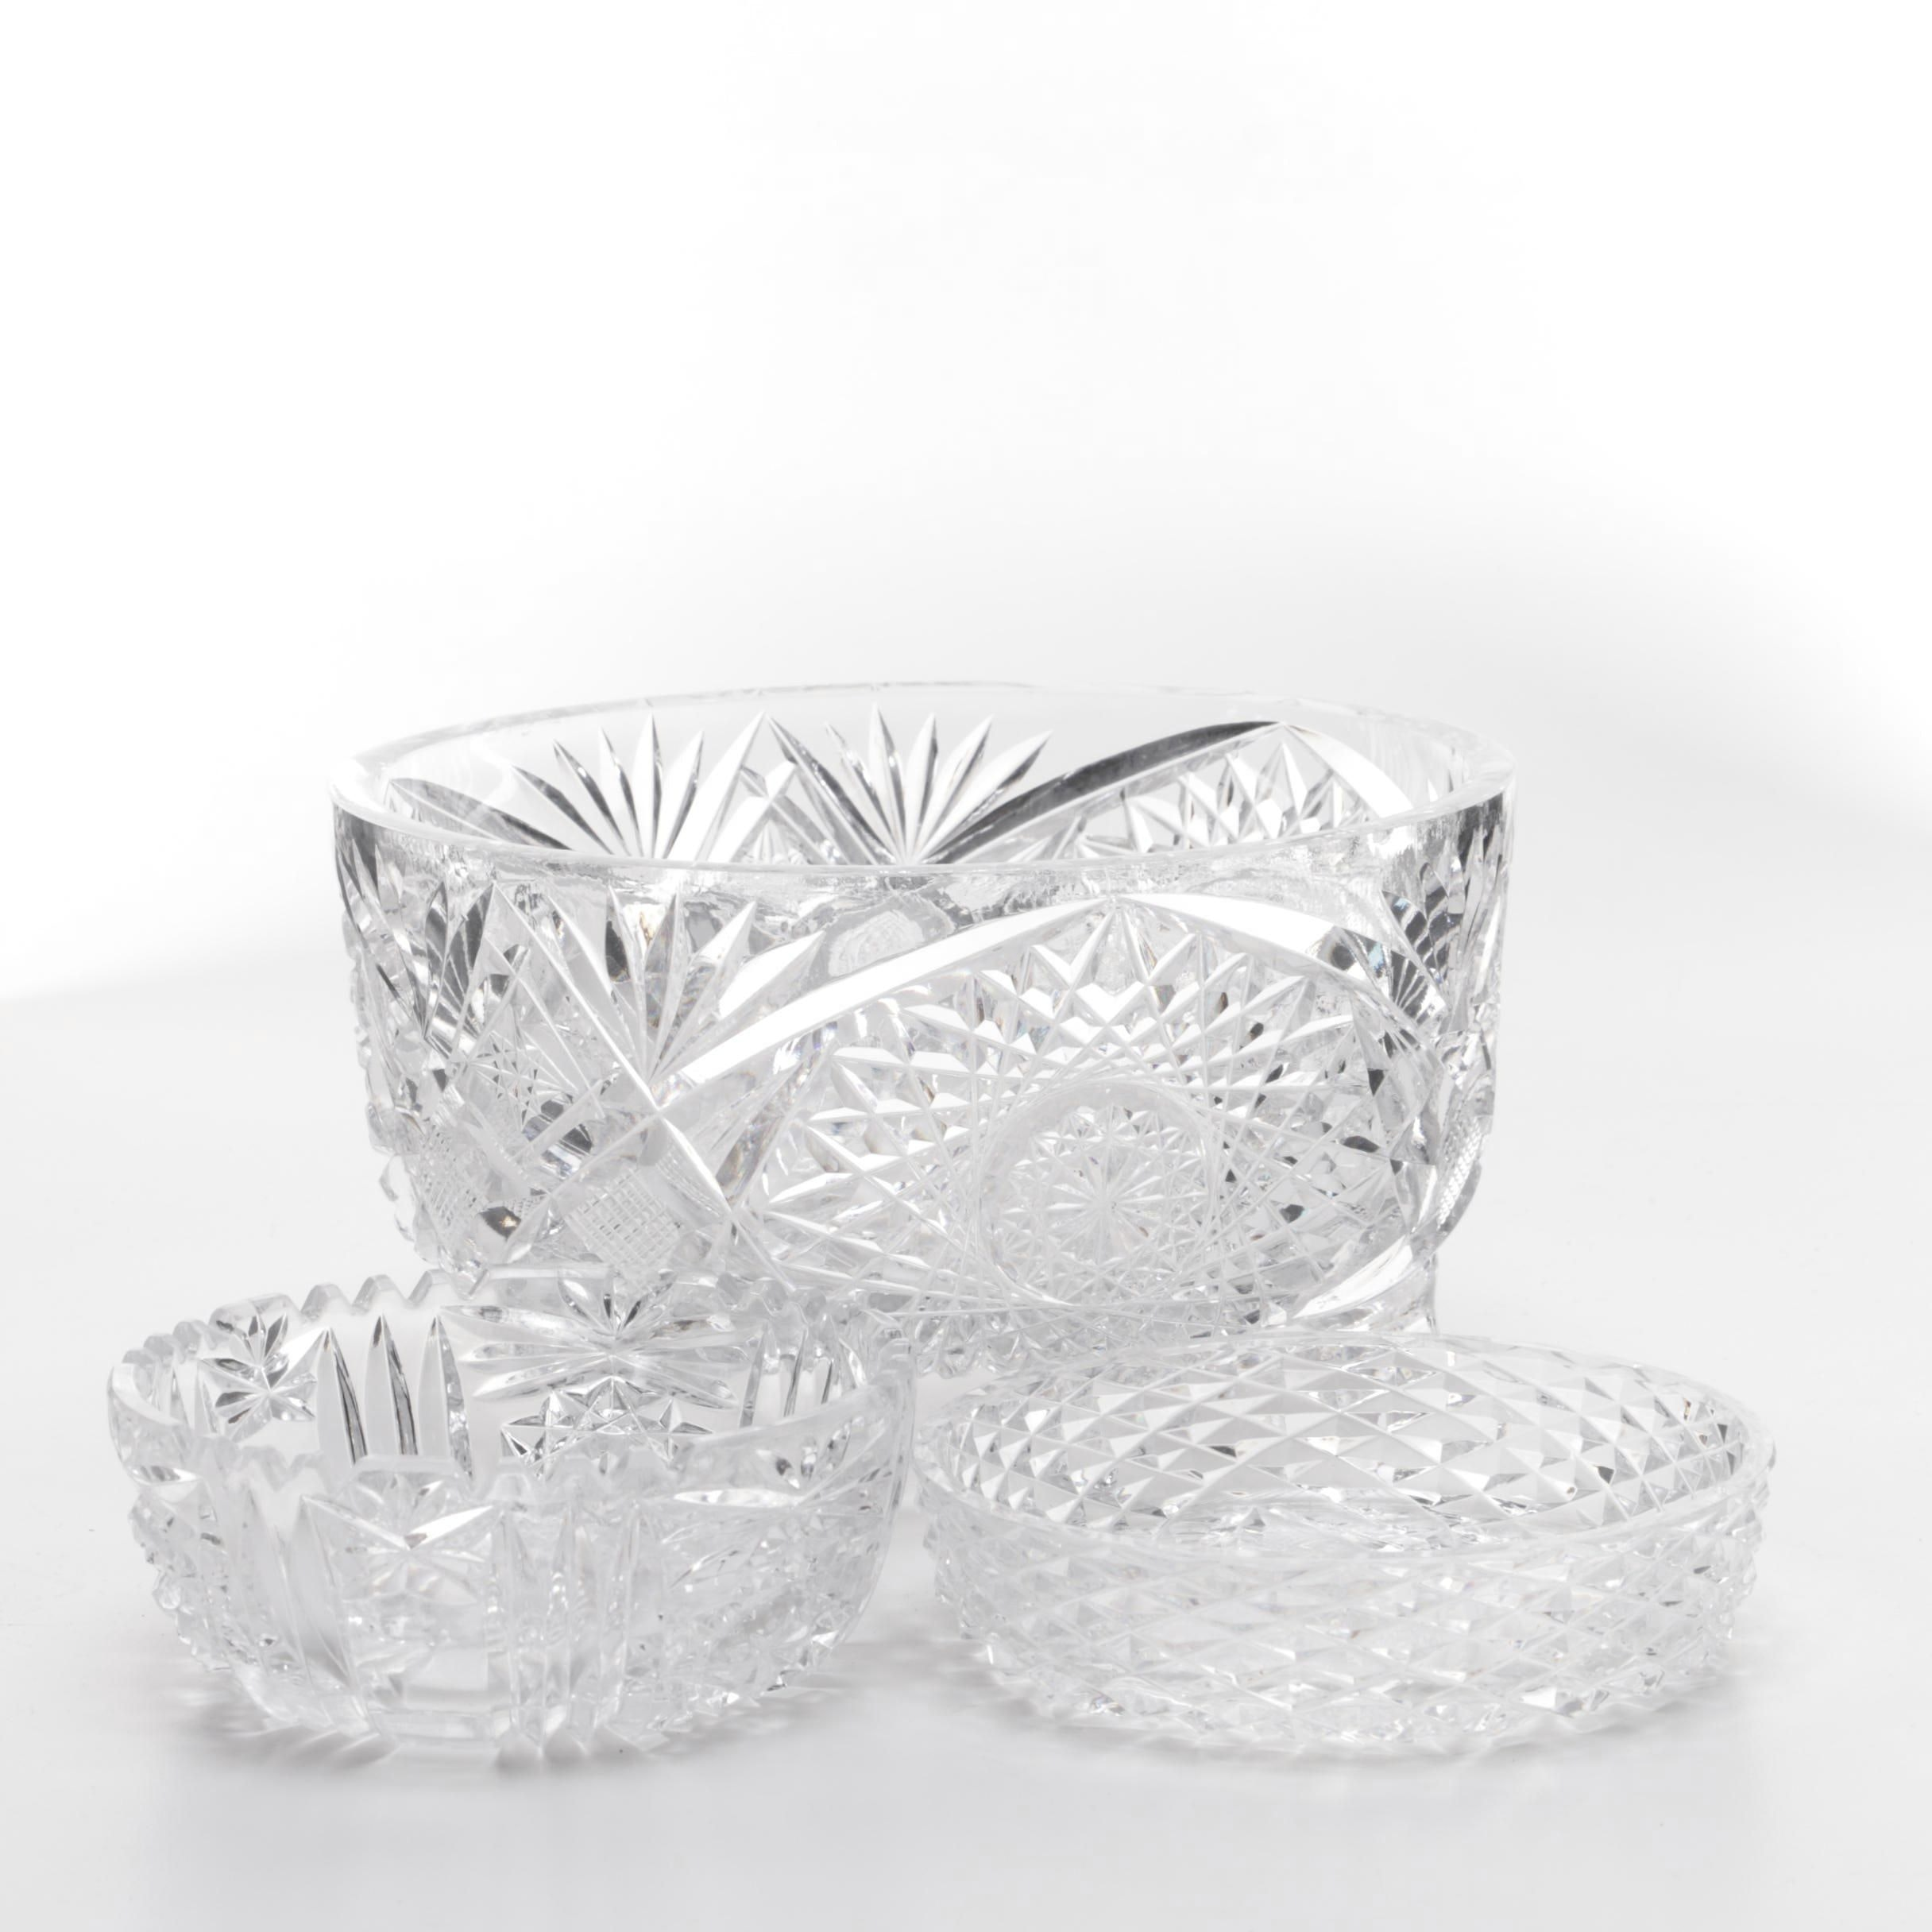 Three Vintage Cut Glass and Crystal Bowls